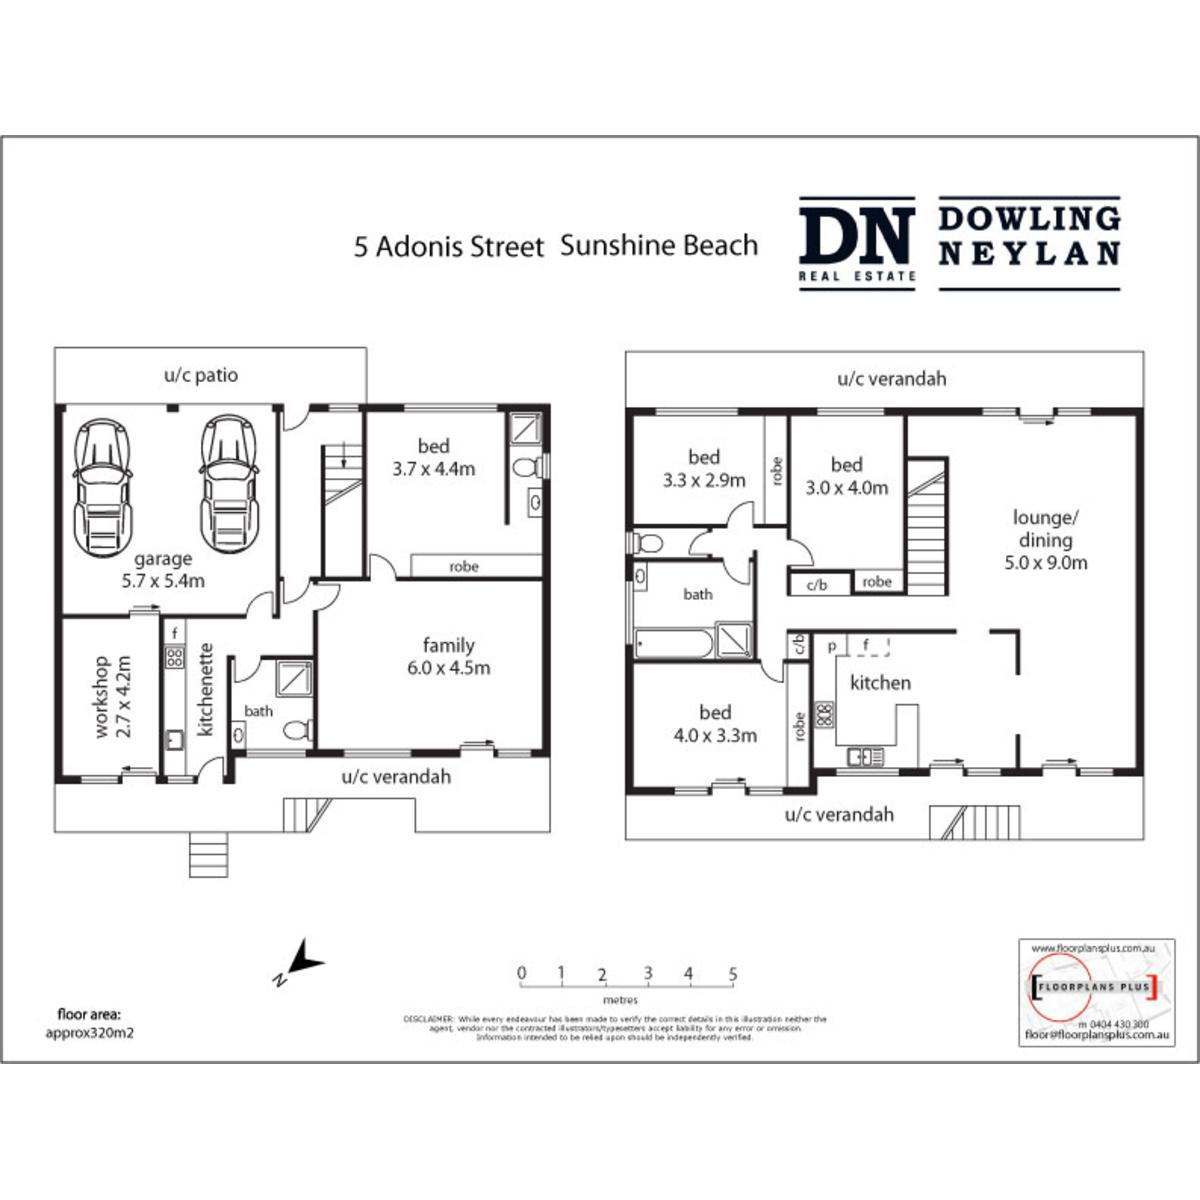 noosa real estate sunshine beach dowling and neylan id